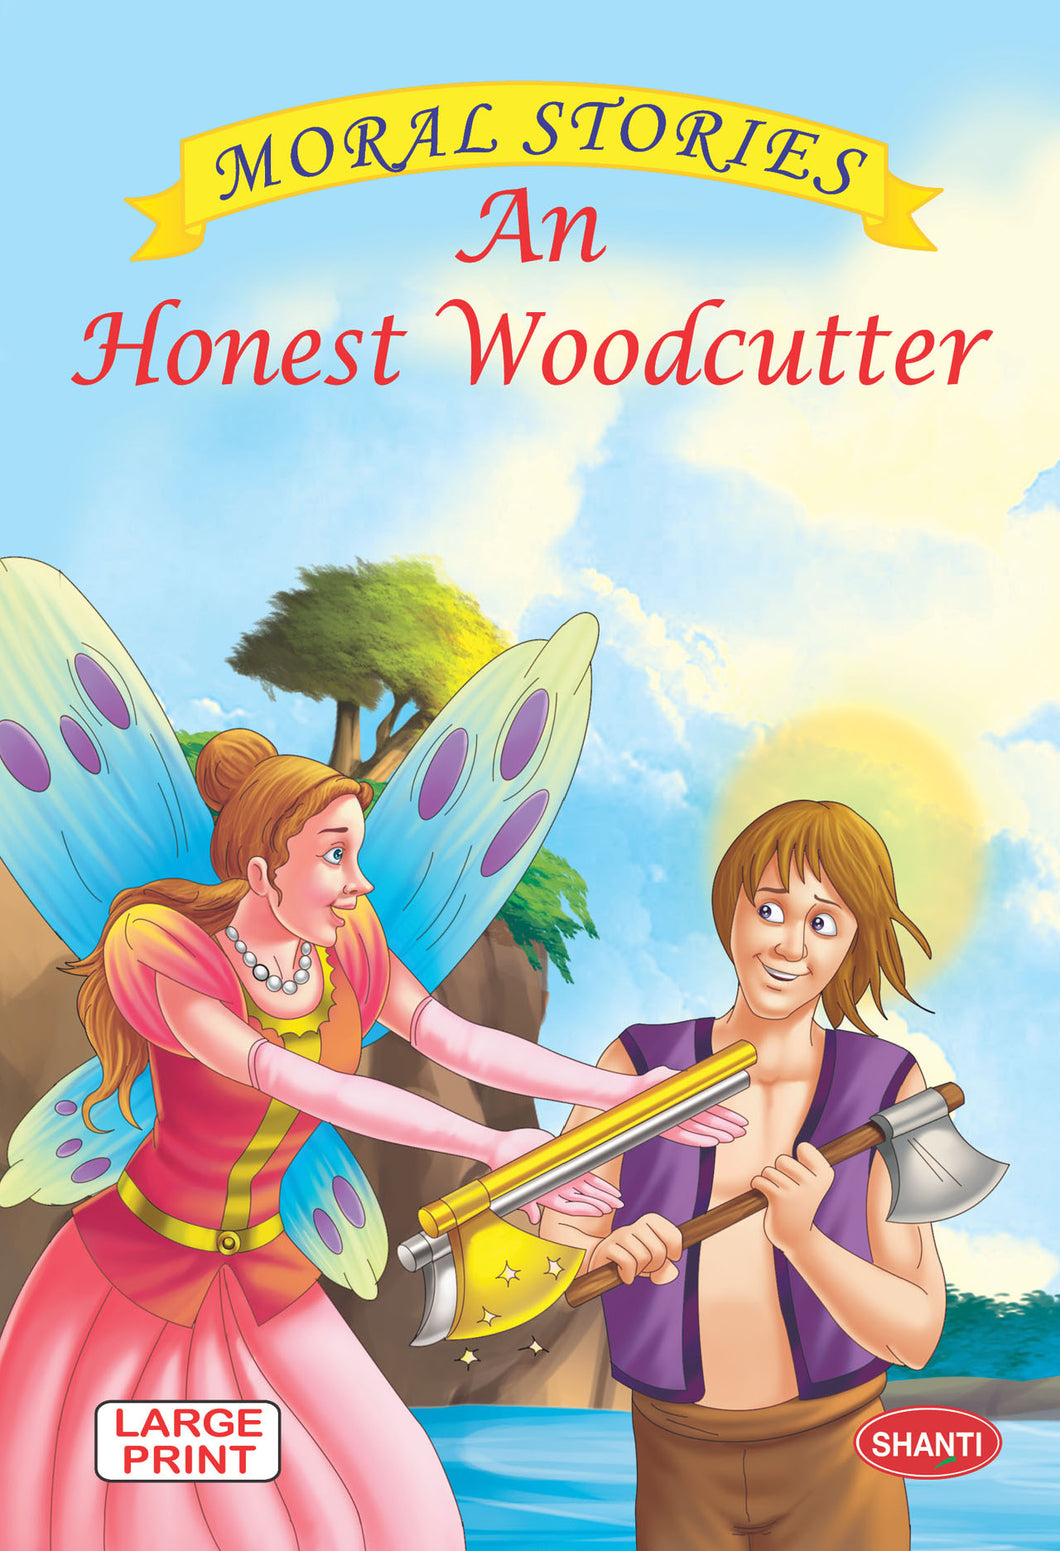 Moral stories for children-Moral Stories (English) -   An Honest Woodcutter